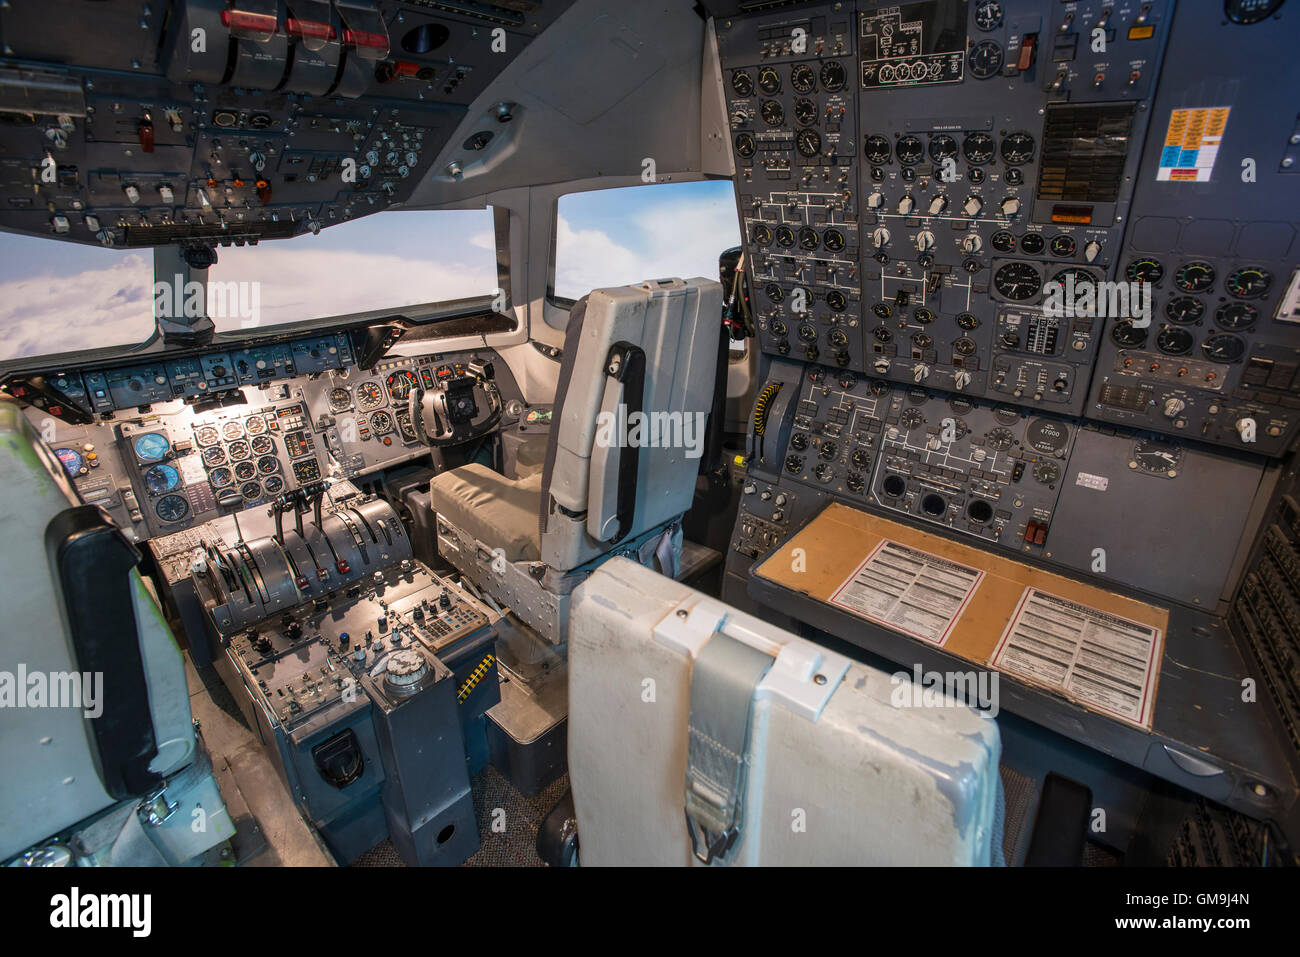 Cockpit simulator of a Douglas DC-10, Wings over the Rockies Air and Space Museum, Denver, Colorado. - Stock Image